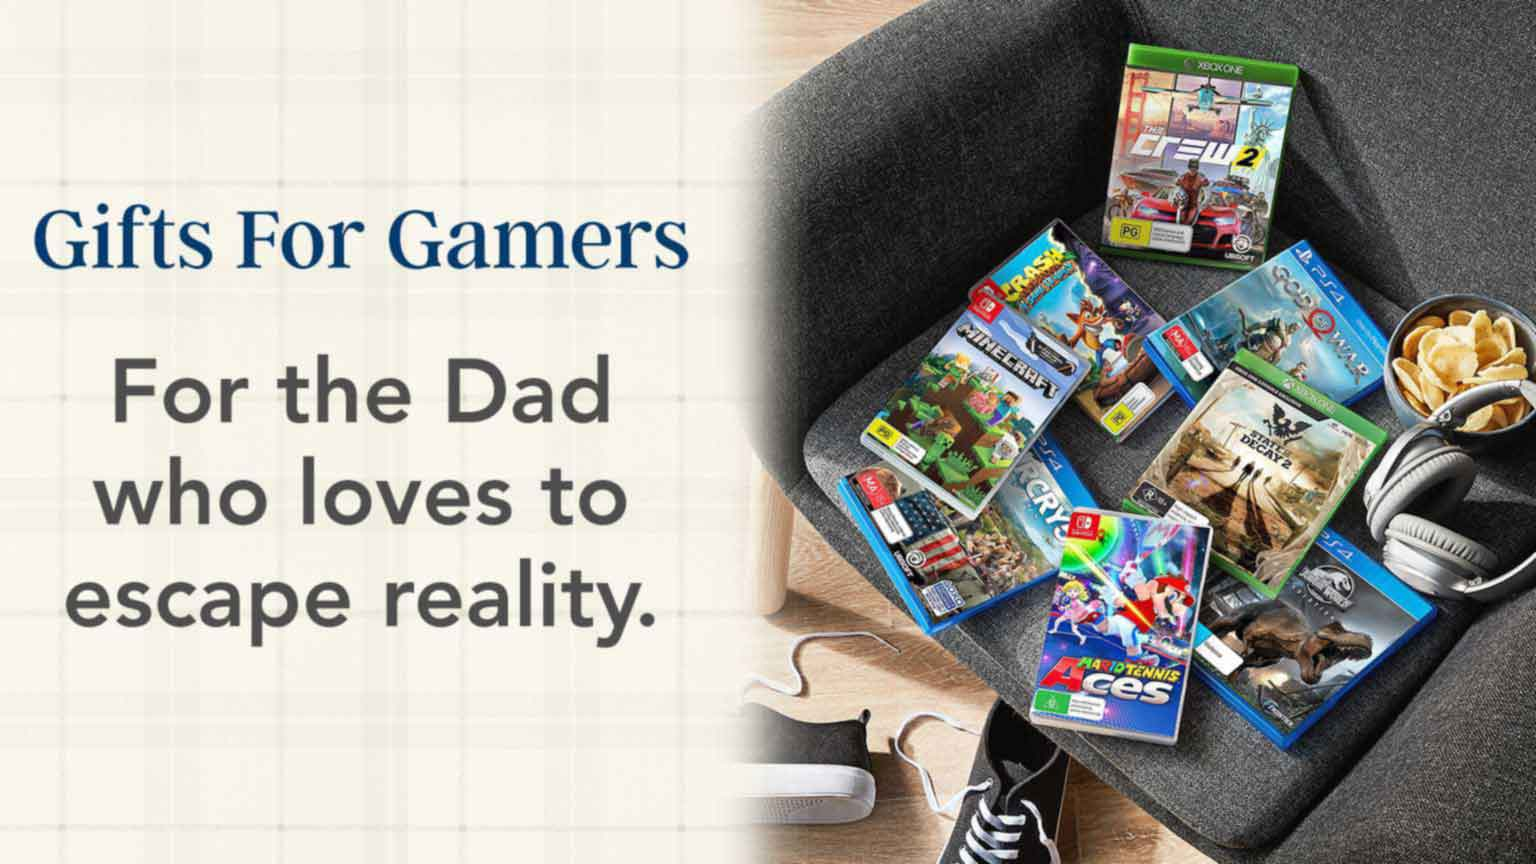 Father's Day - Gifts for gamers